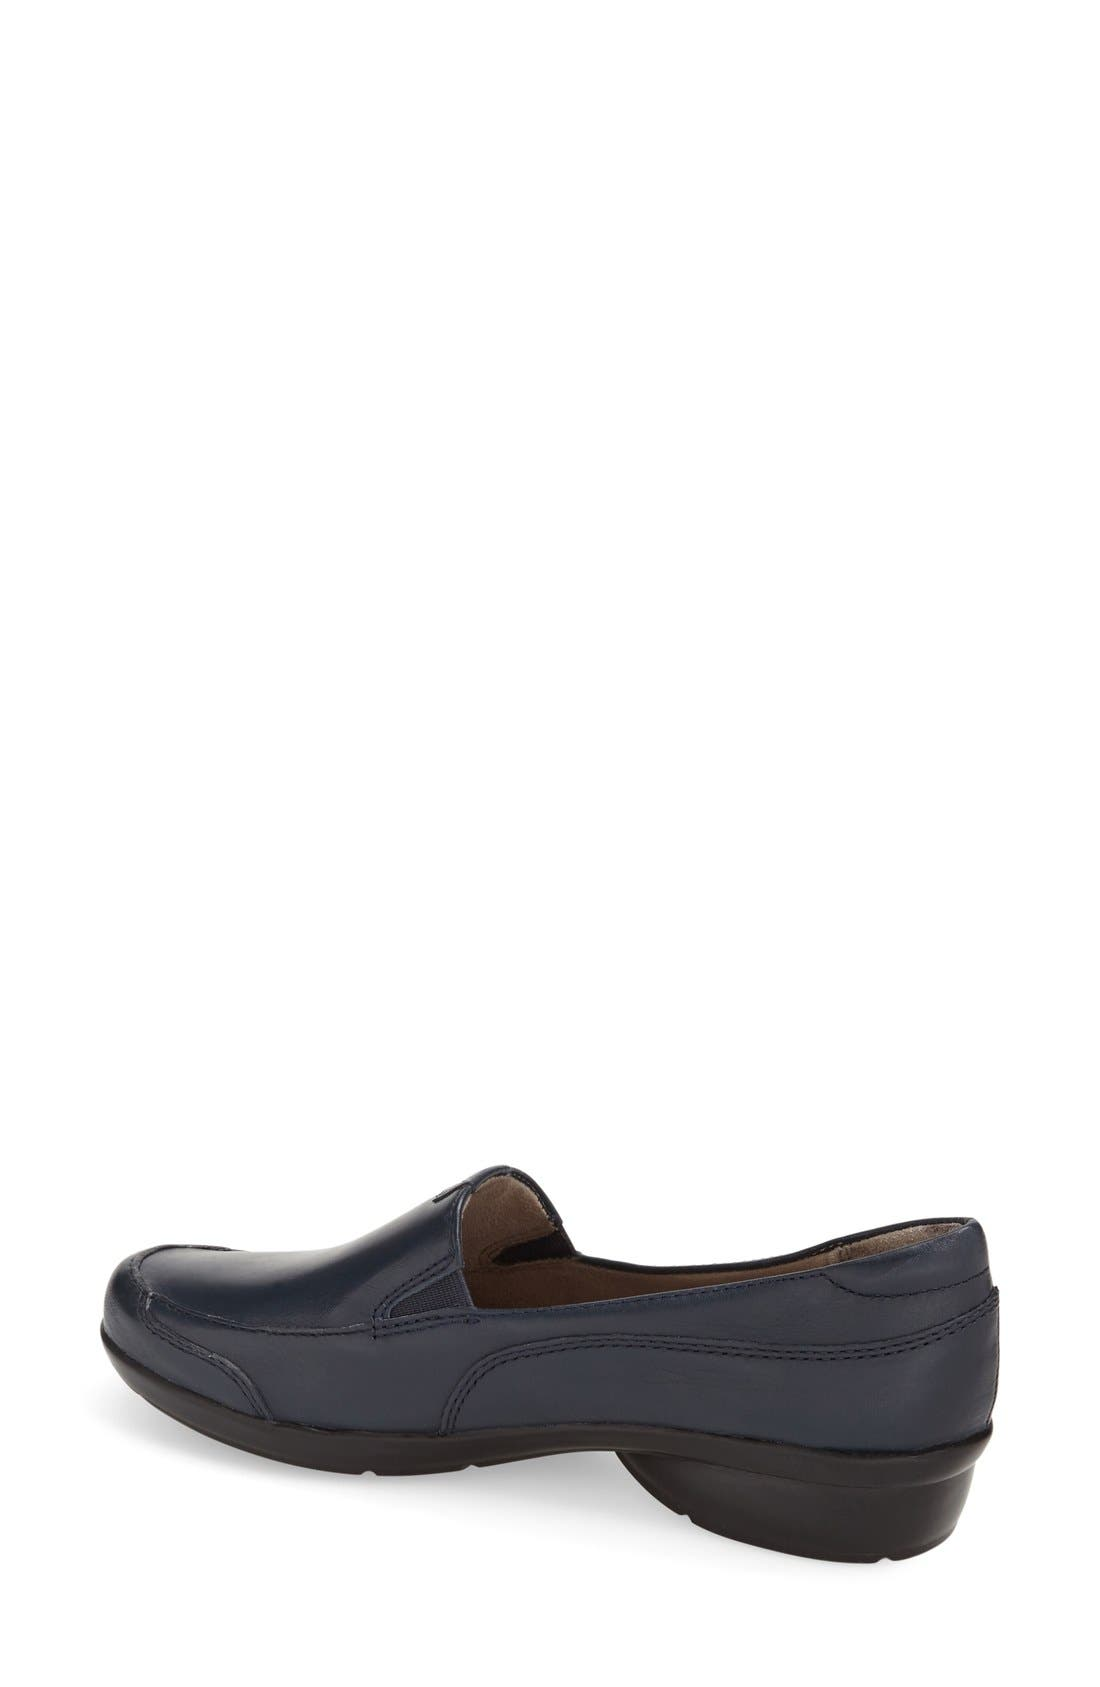 NATURALIZER, 'Channing' Loafer, Alternate thumbnail 2, color, NAVY